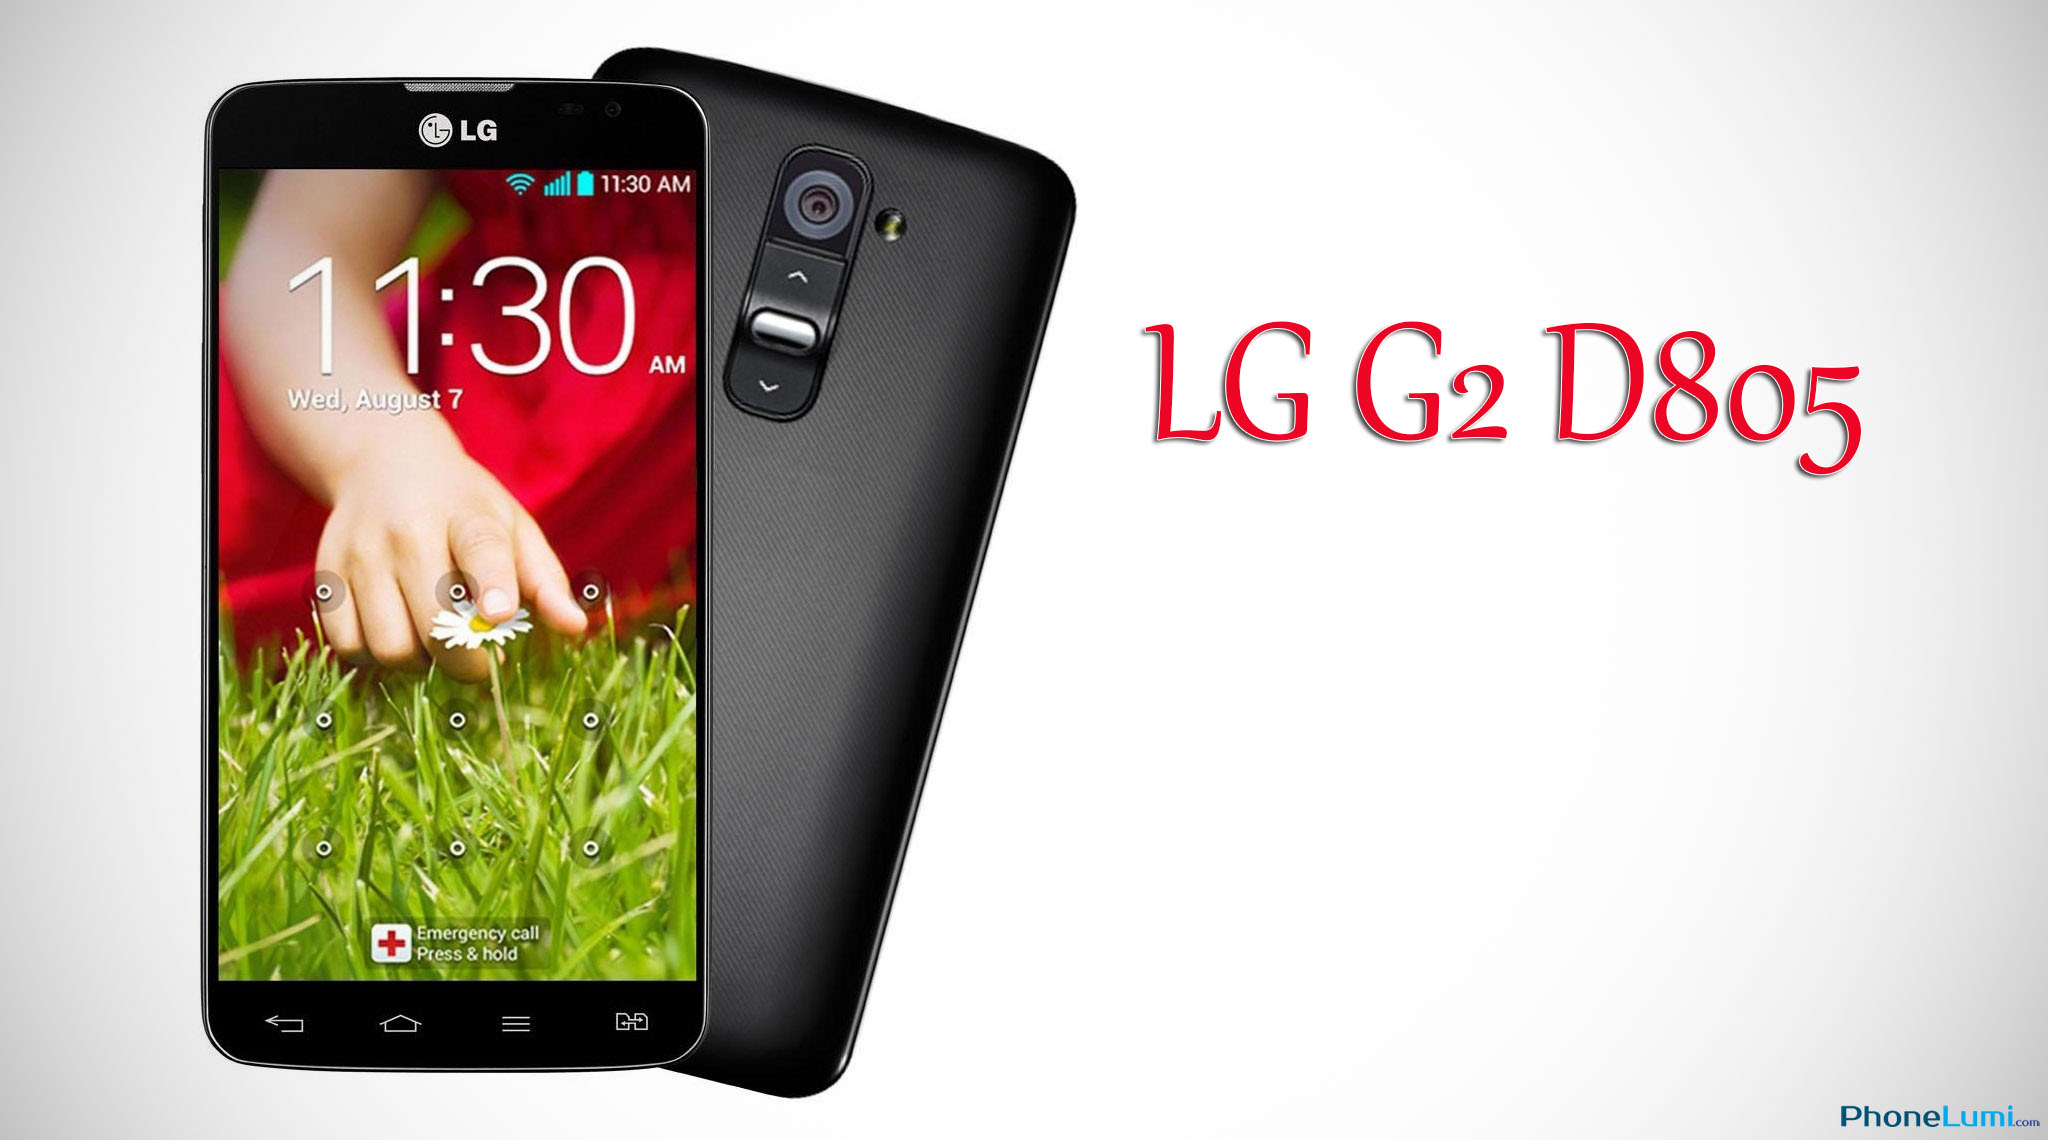 LG G2 D805 schematics manual